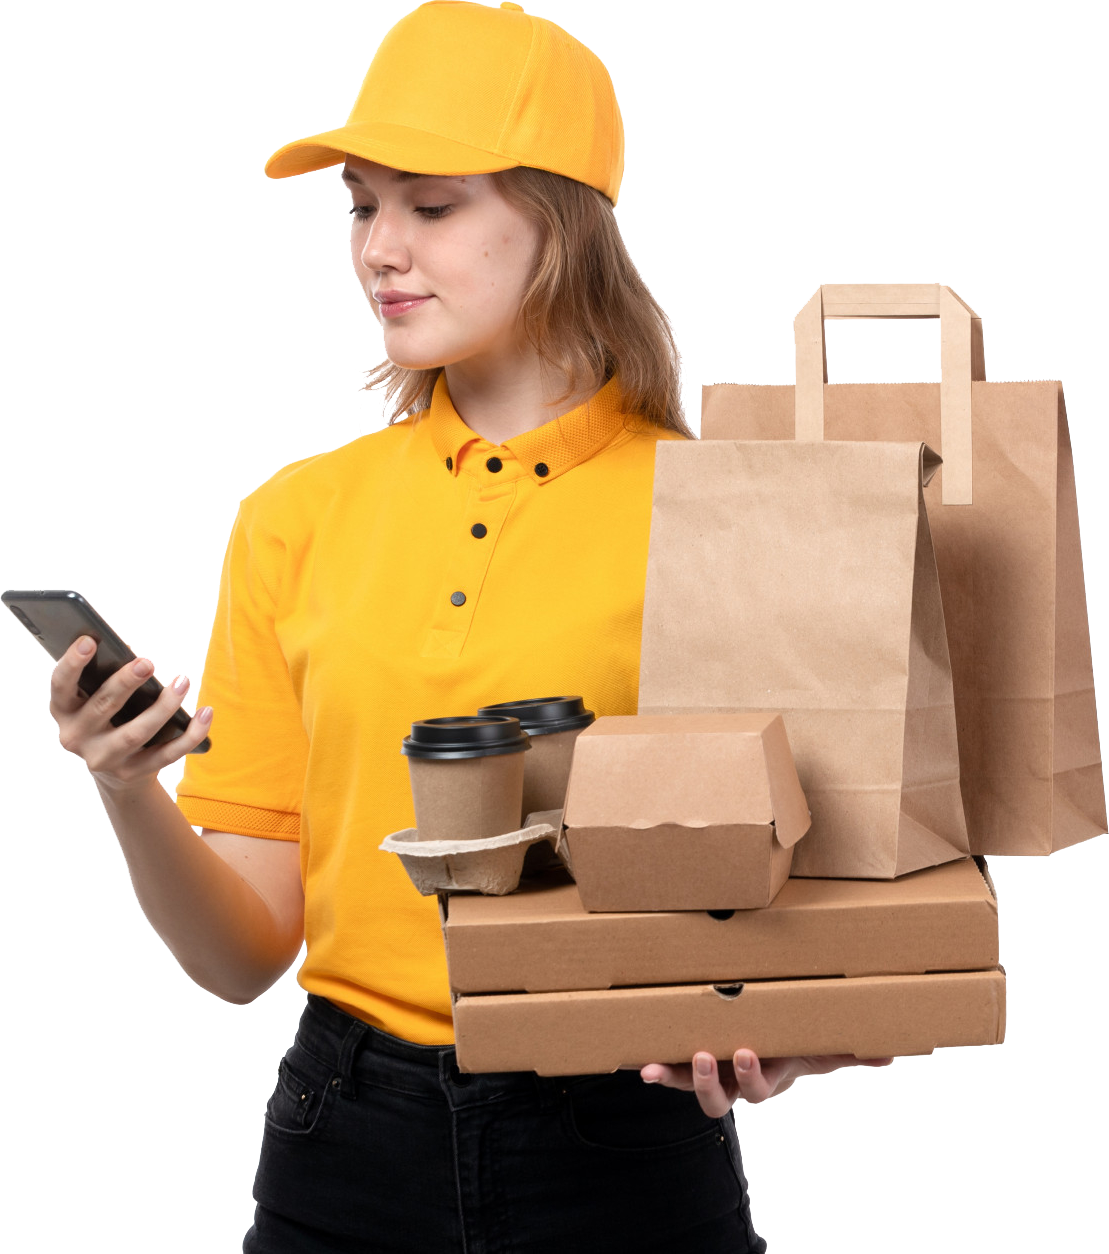 girl-delivery.png